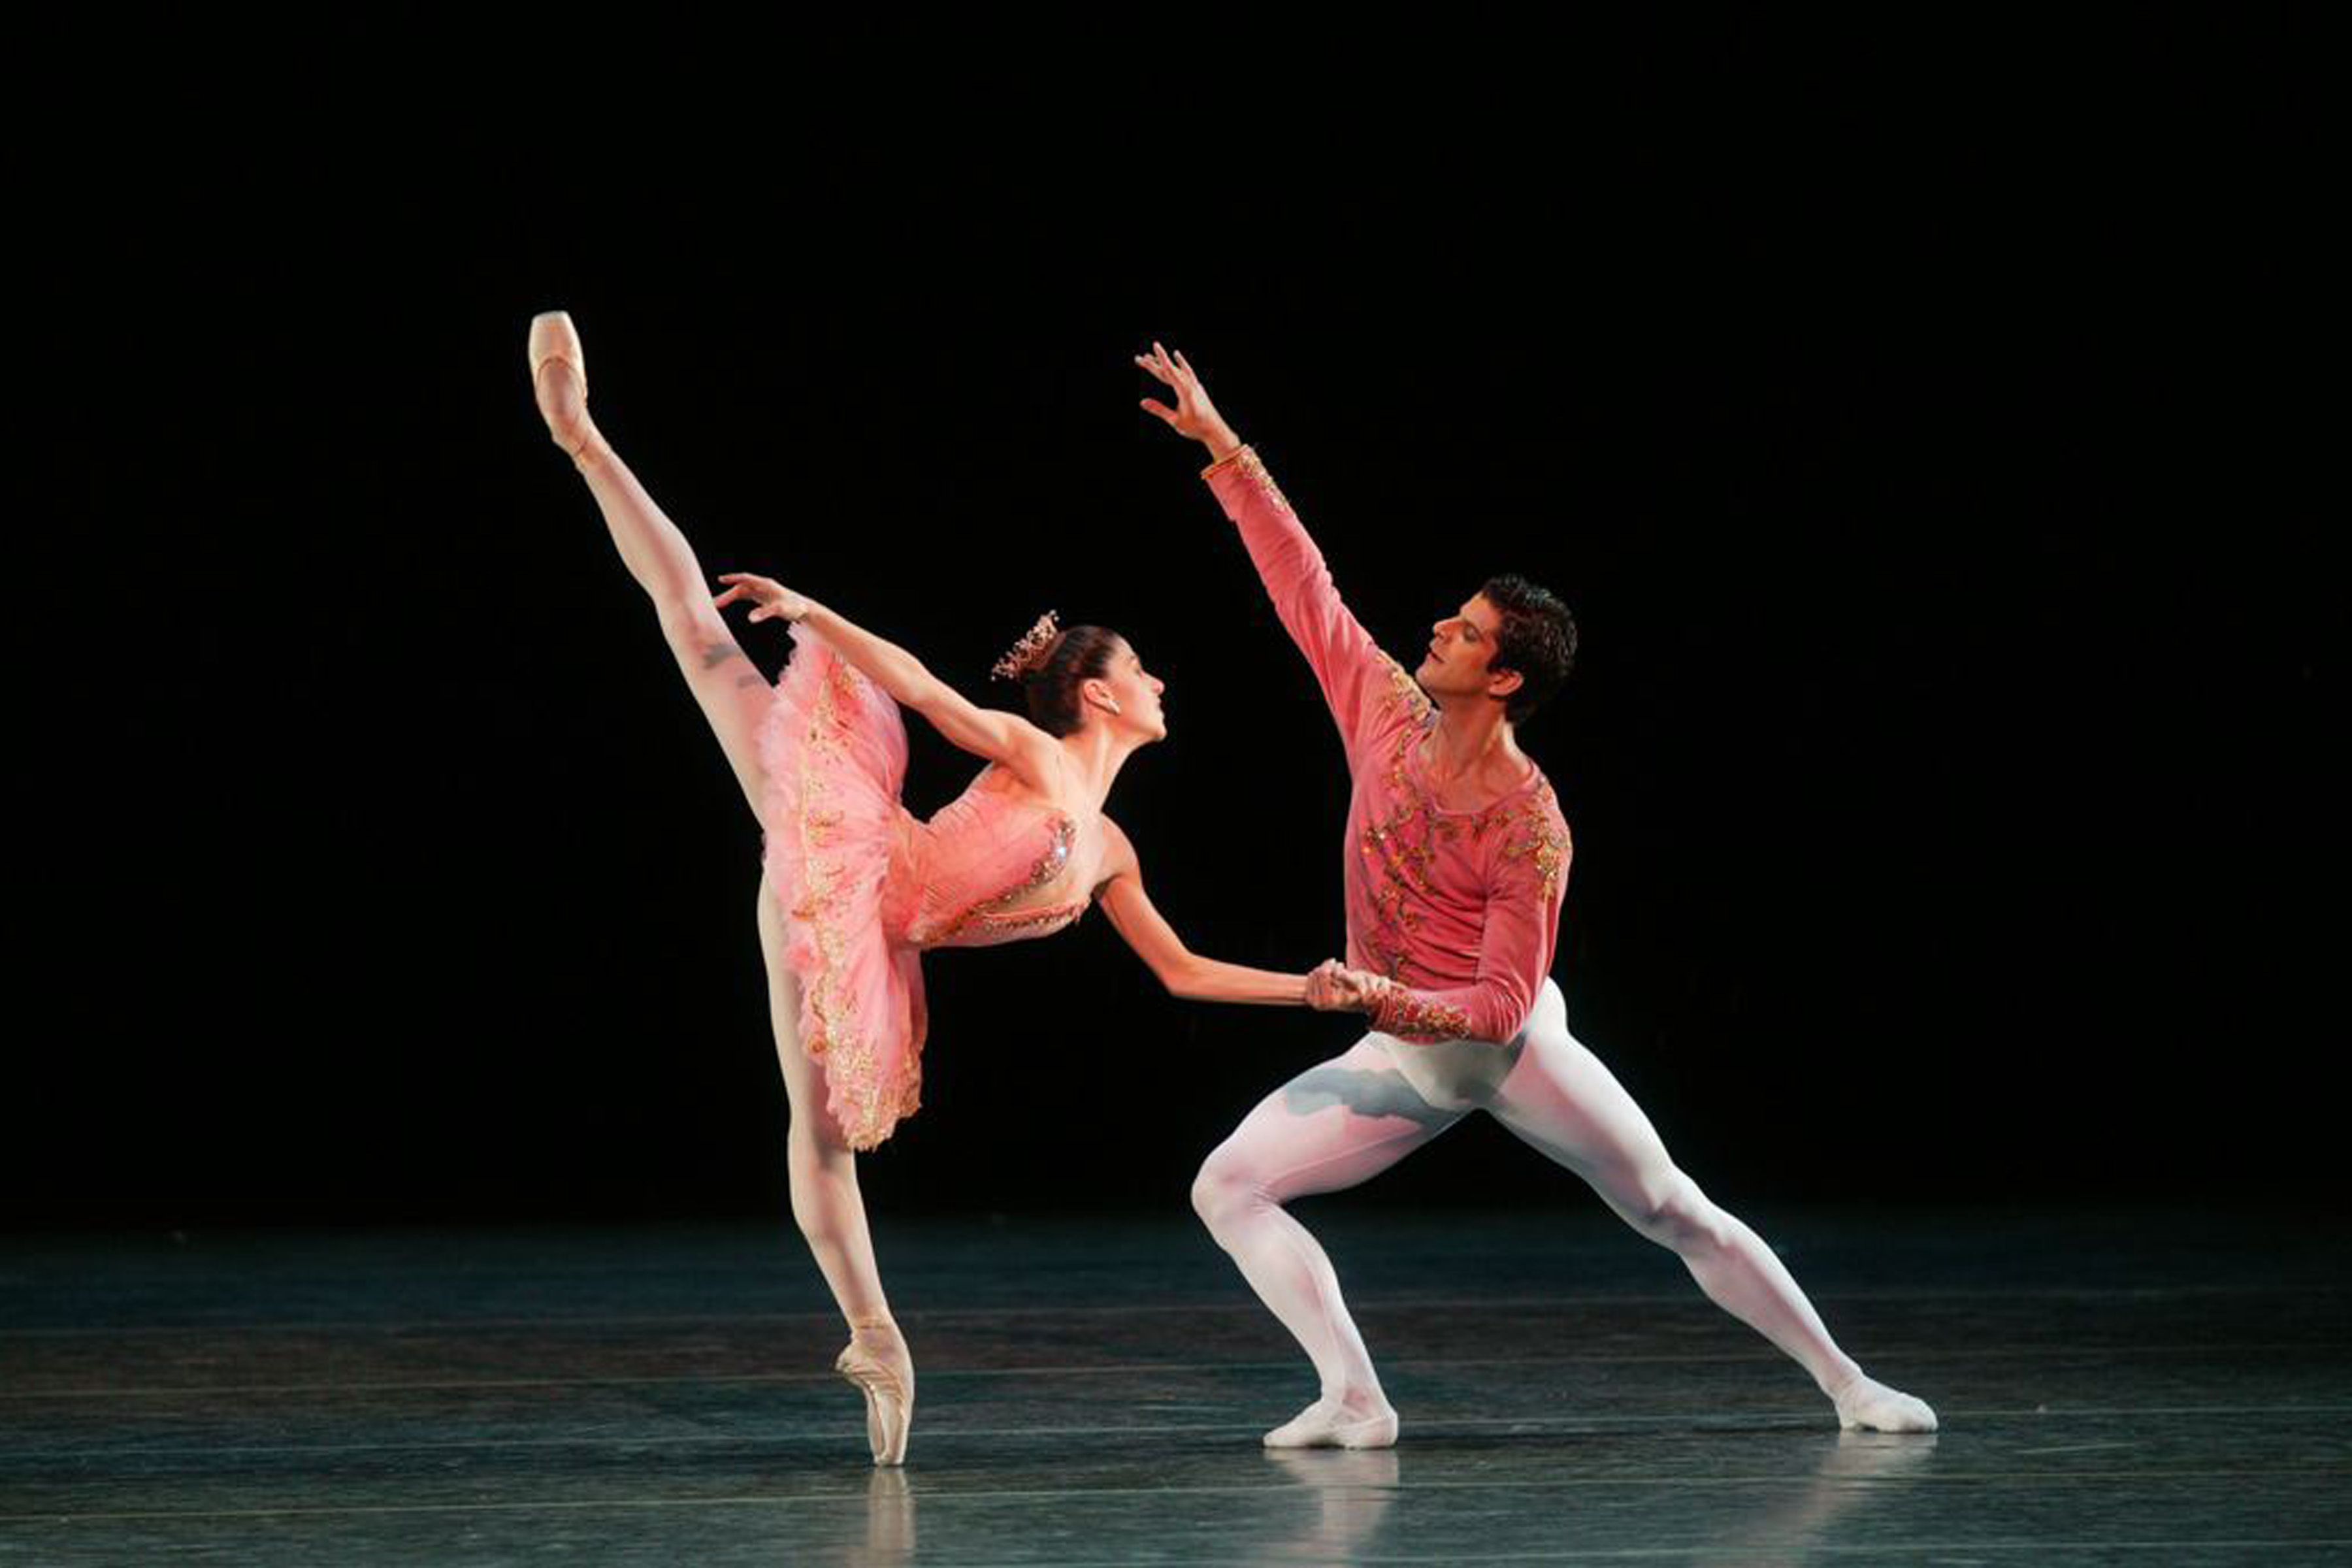 two dancers on stage in arabesque